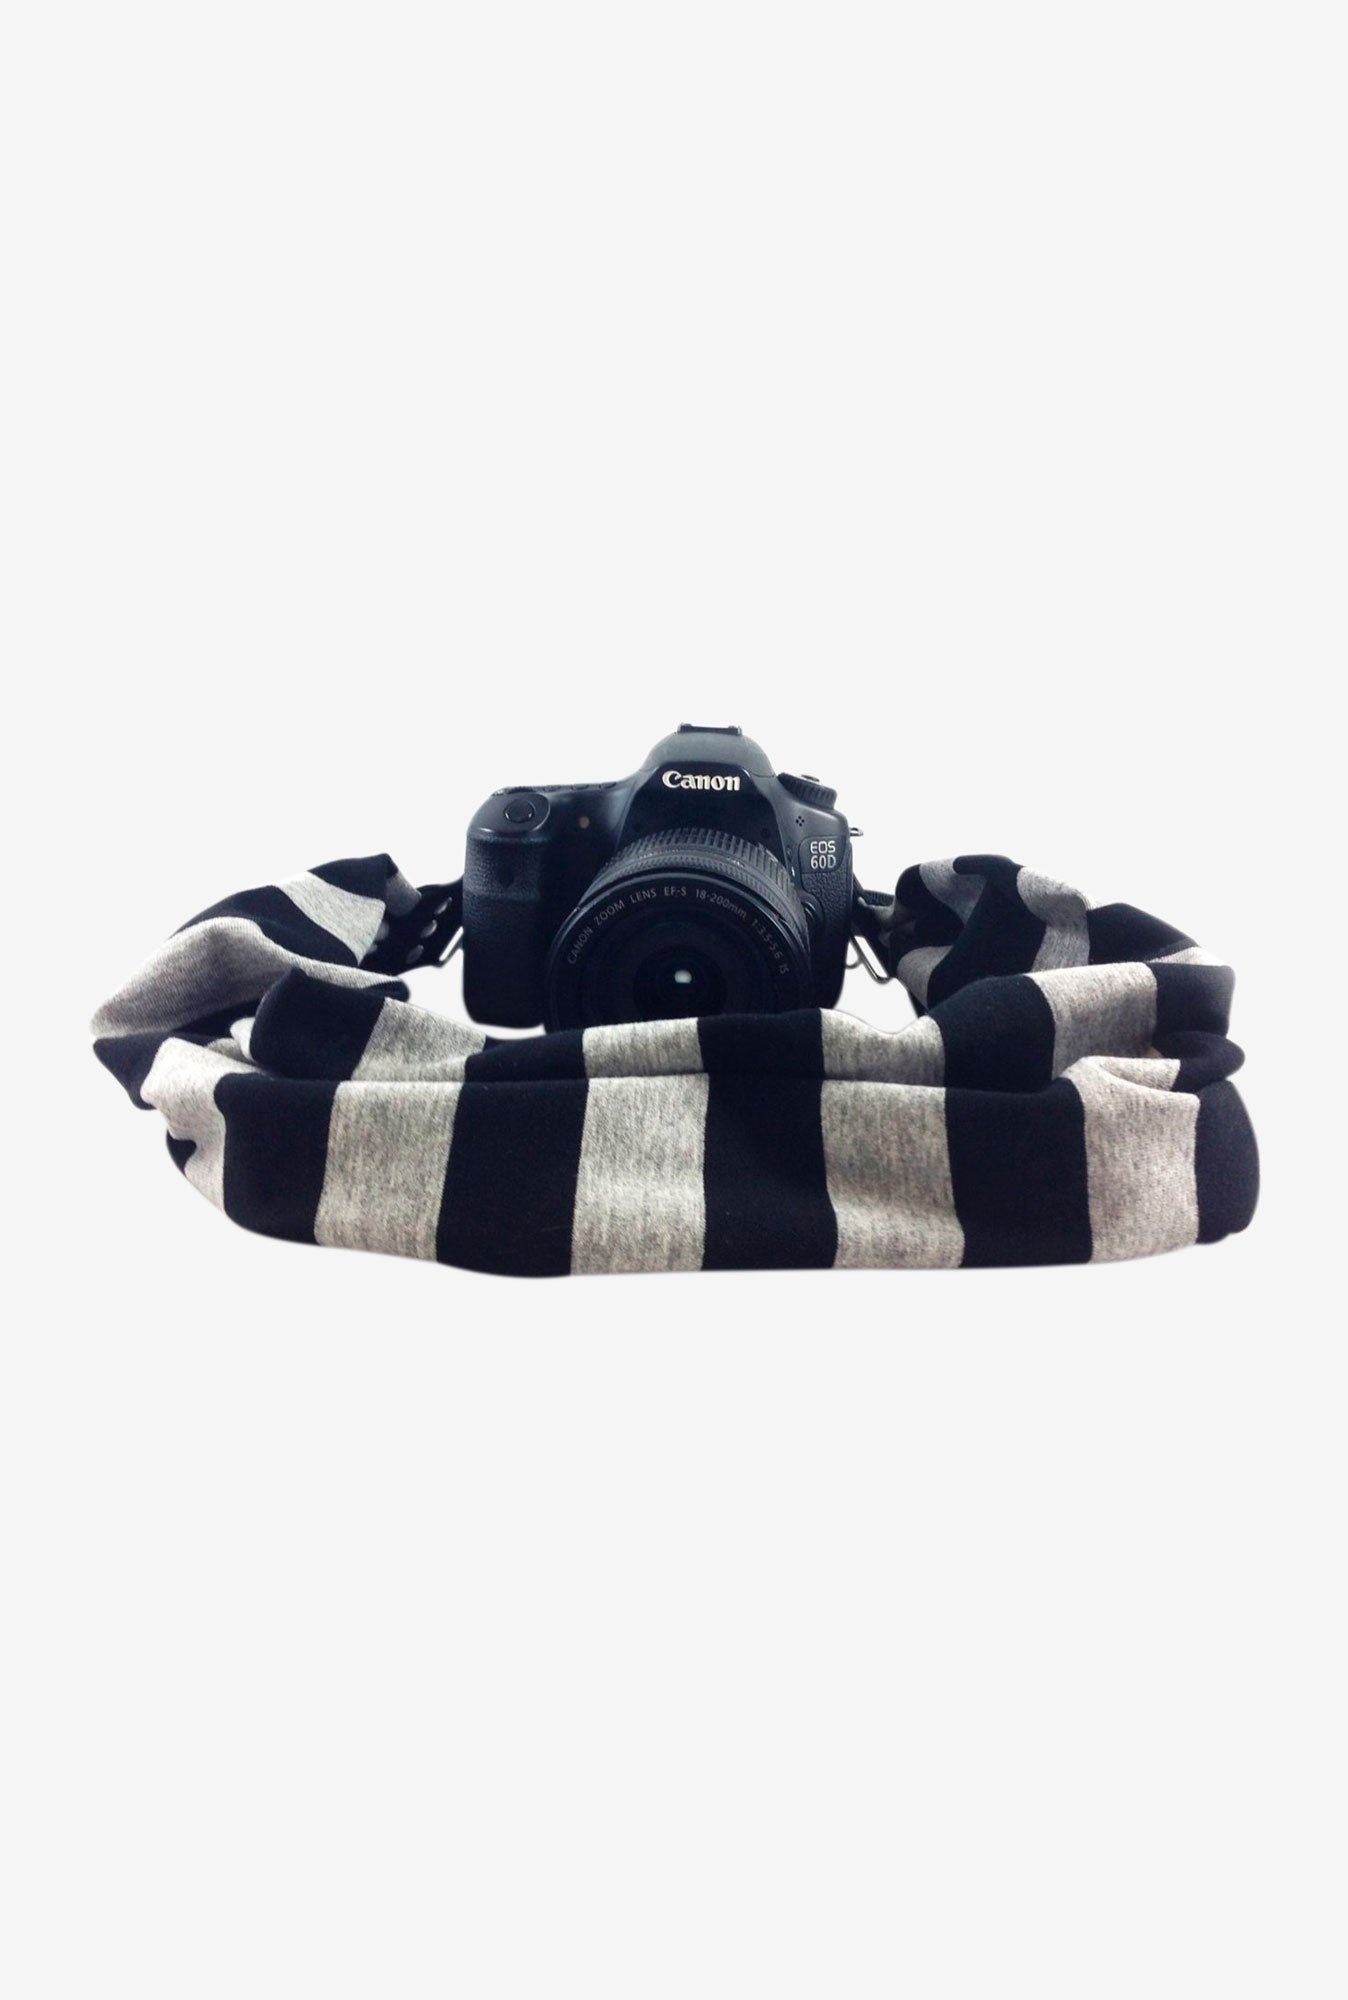 Capturing Couture SCARF-AMBR Camera Strap Gray